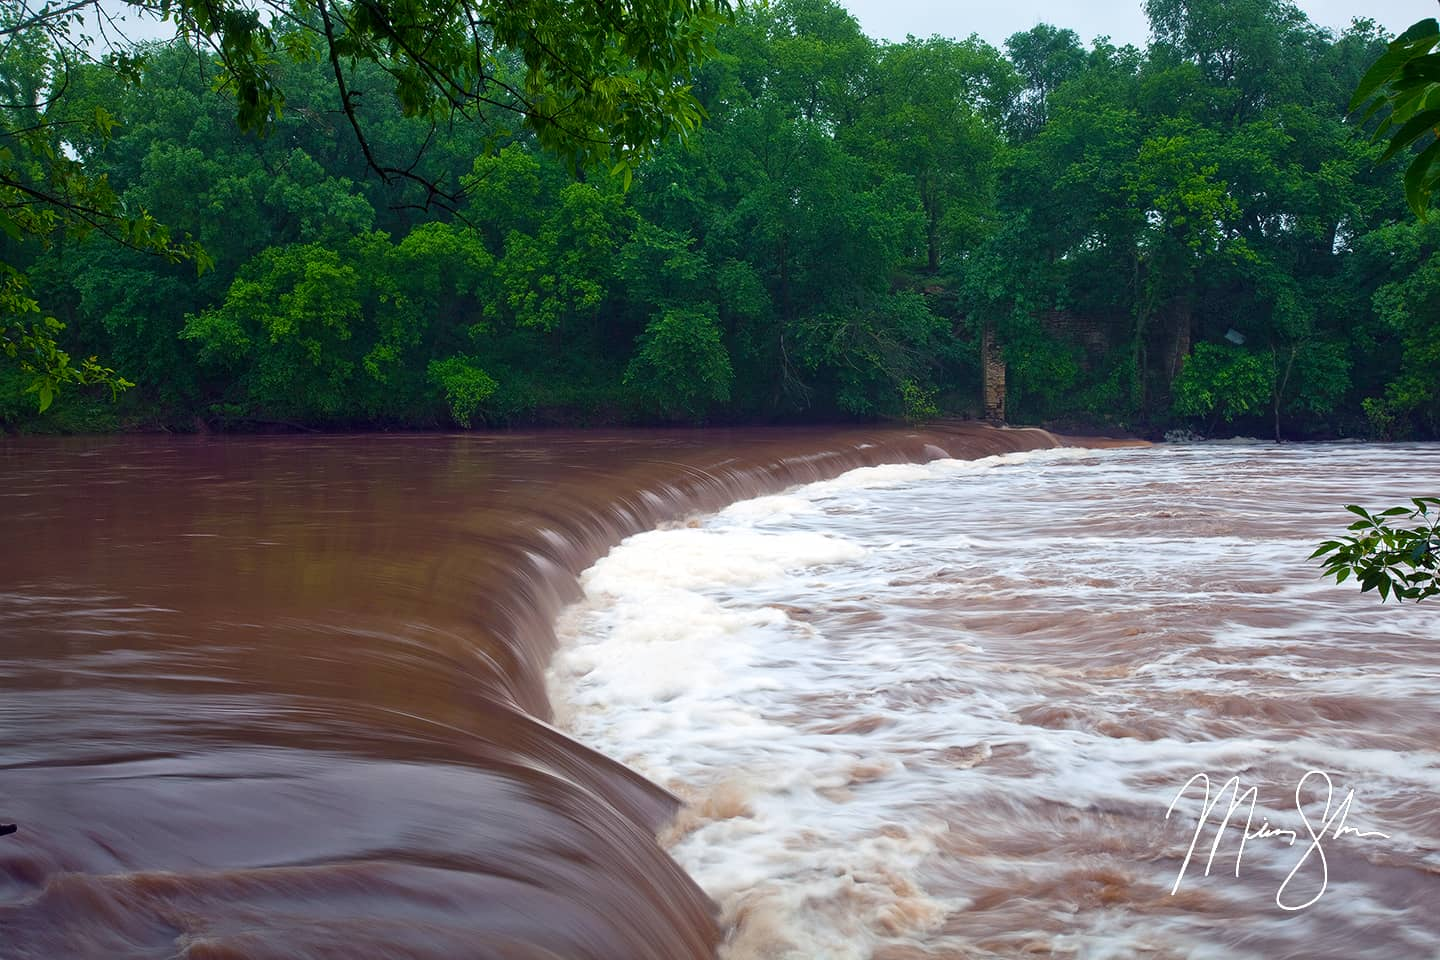 Open edition fine art print of Flooded Drury Dam Waterfall from Mickey Shannon Photography. Location: Drury Park, Drury, Kansas